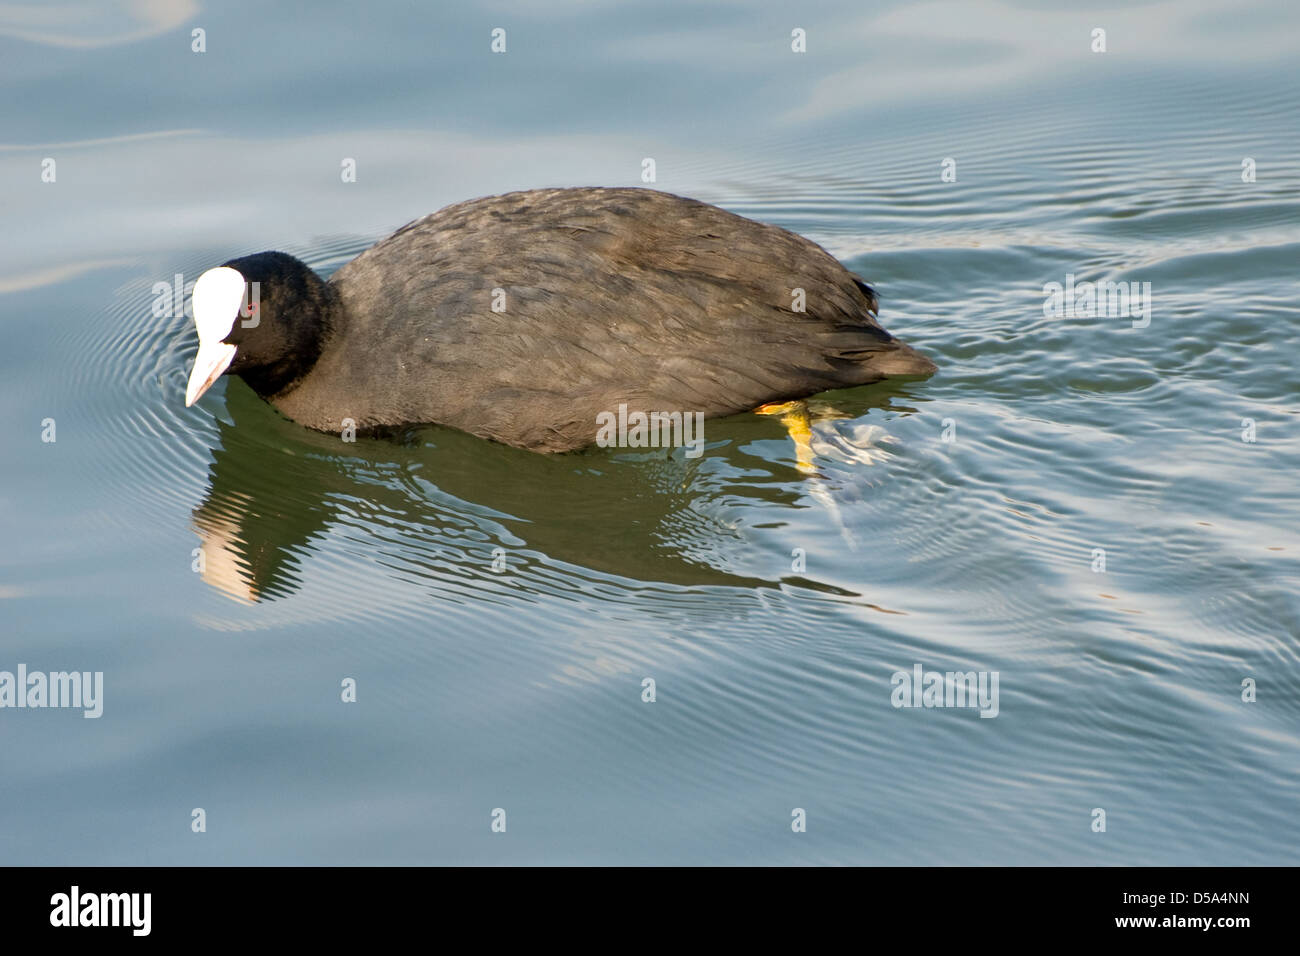 Coot swimming in clear water - Stock Image